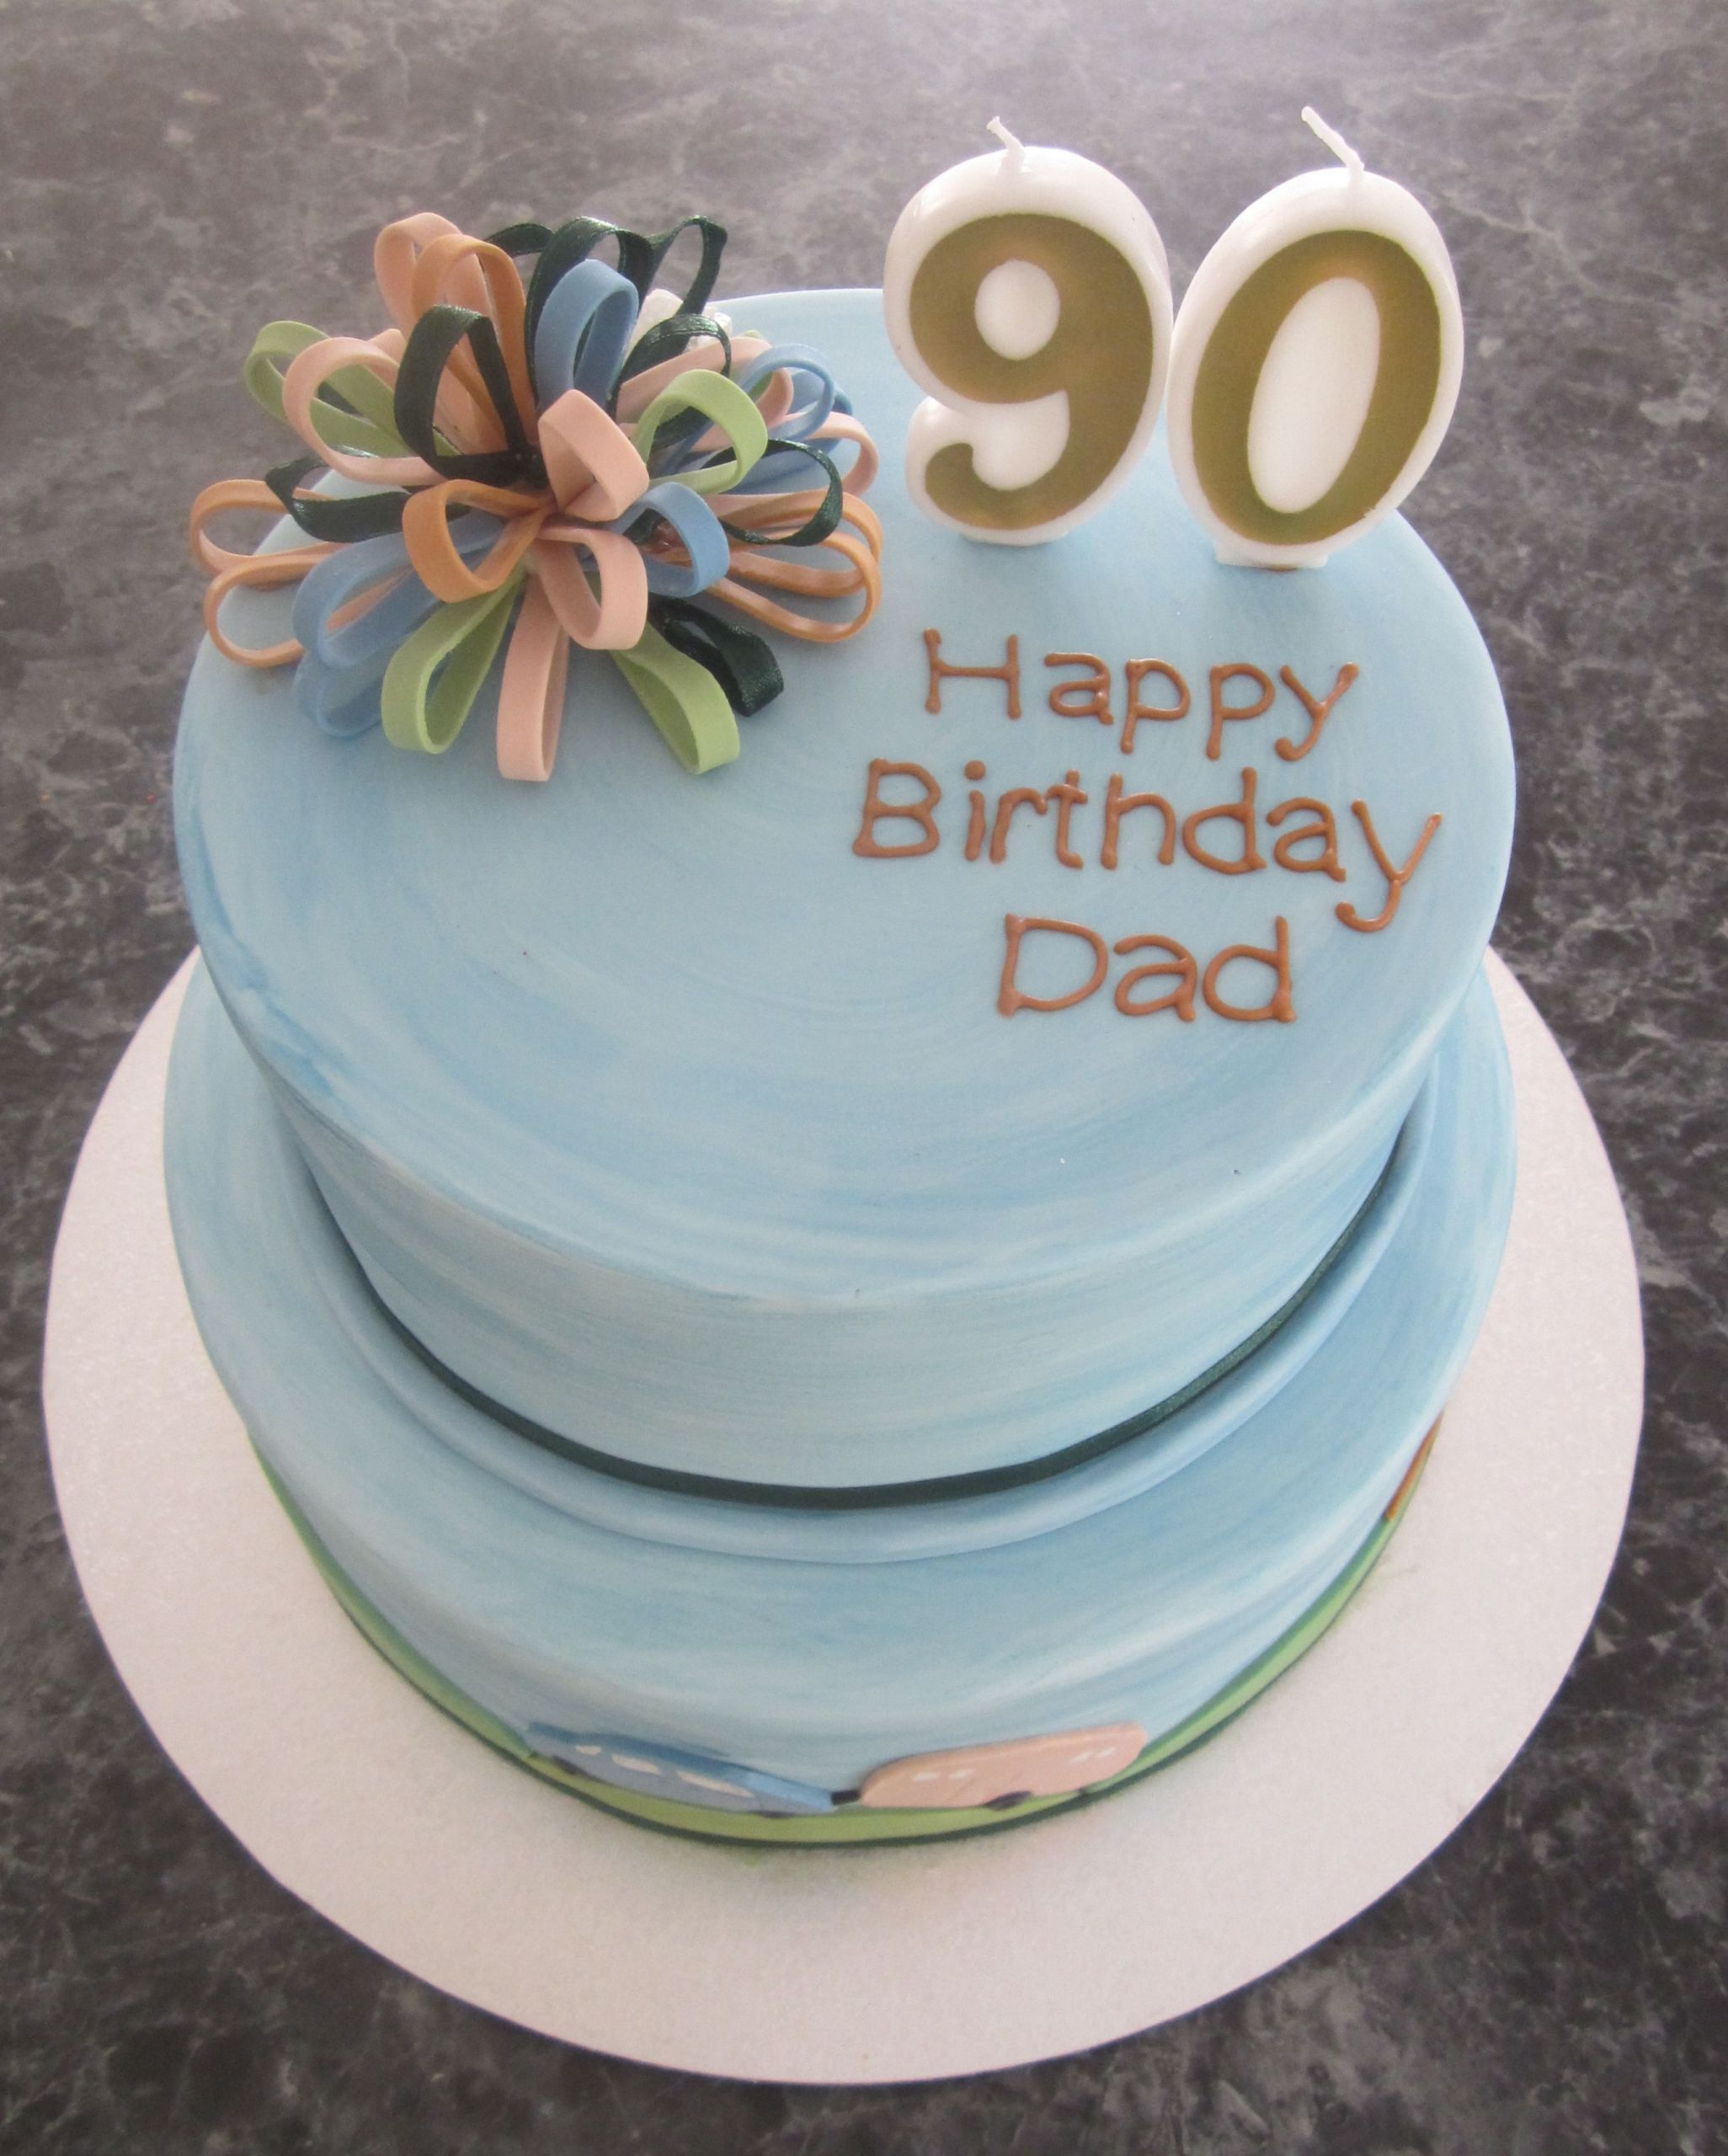 90Th Birthday Gift Ideas For Men  Image result for 90th birthday cake for men